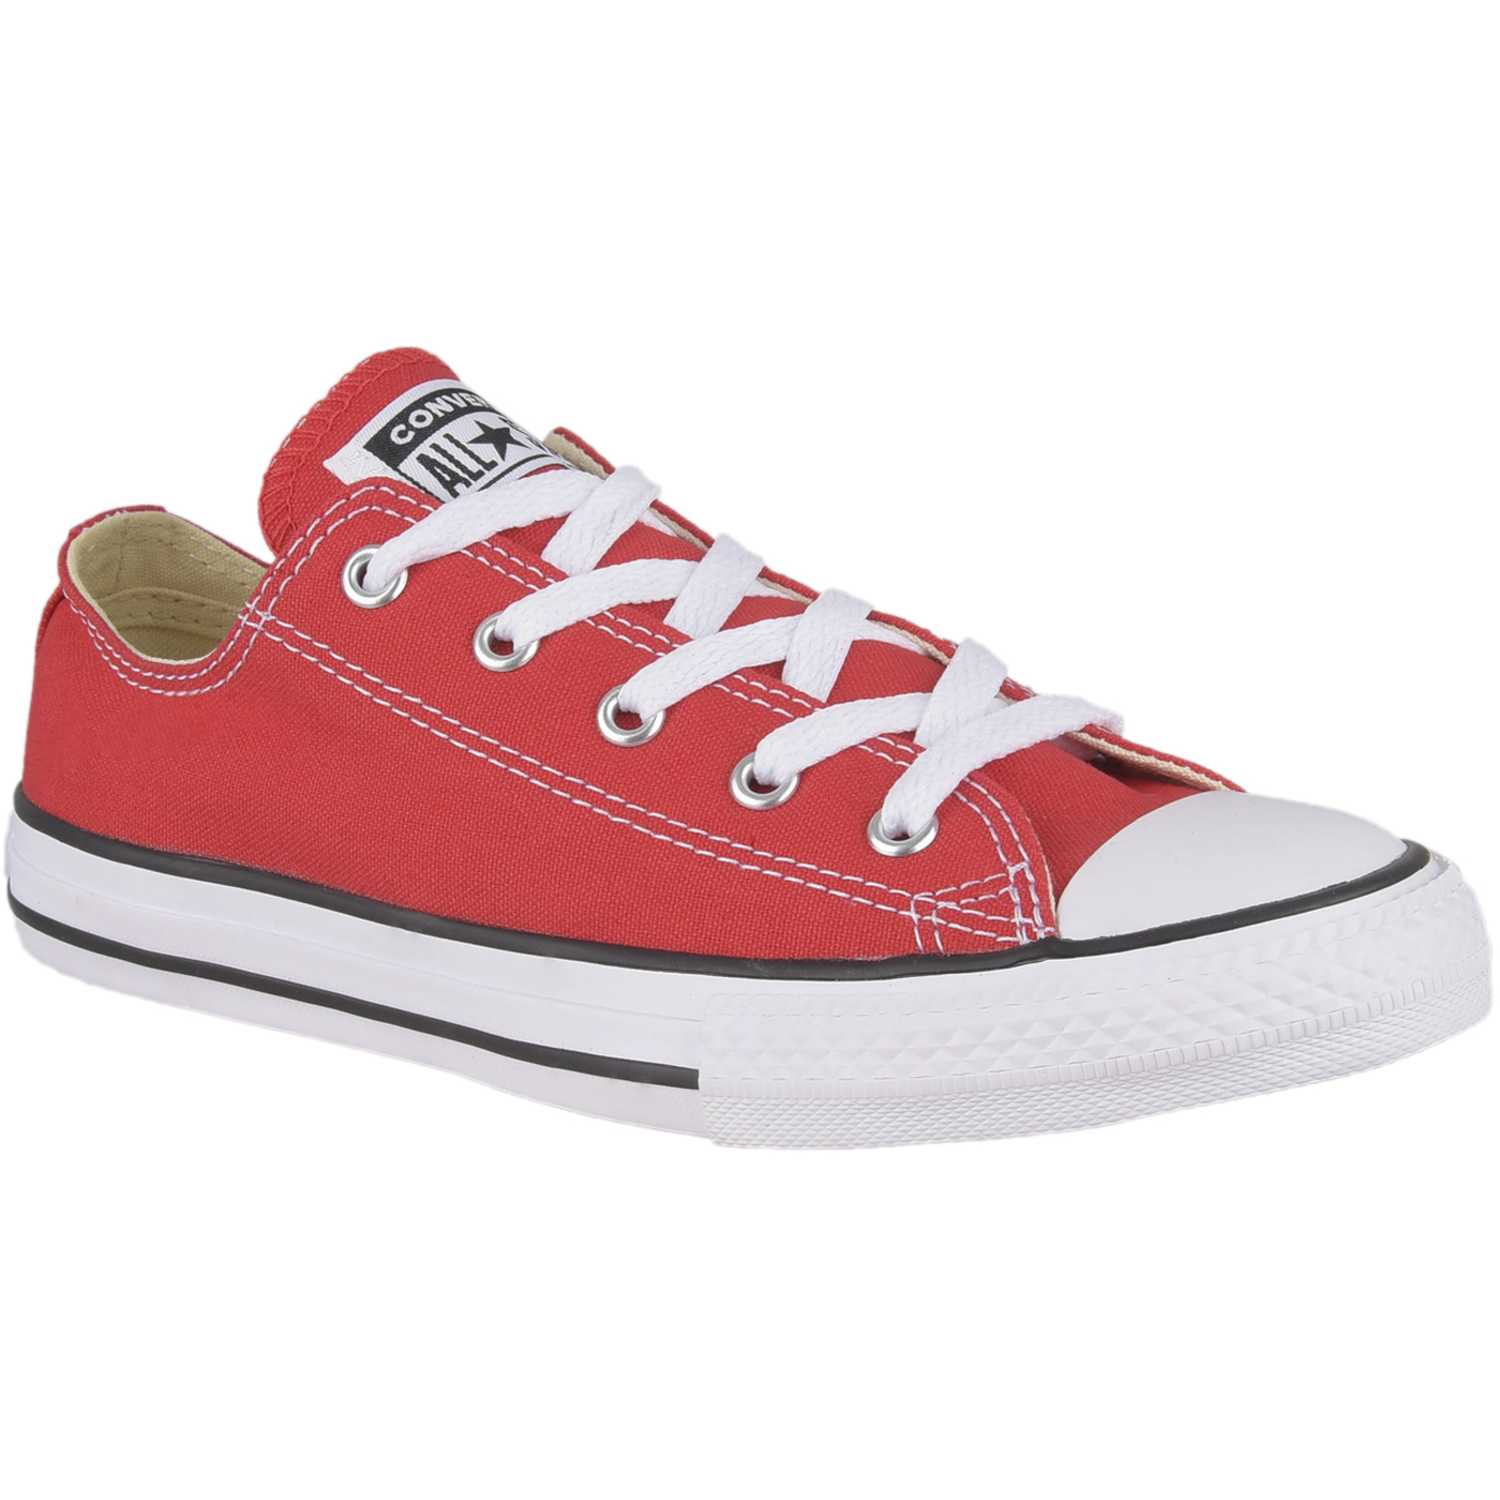 Zapatilla de Jovencito Converse Rojo / blanco ct as core ox